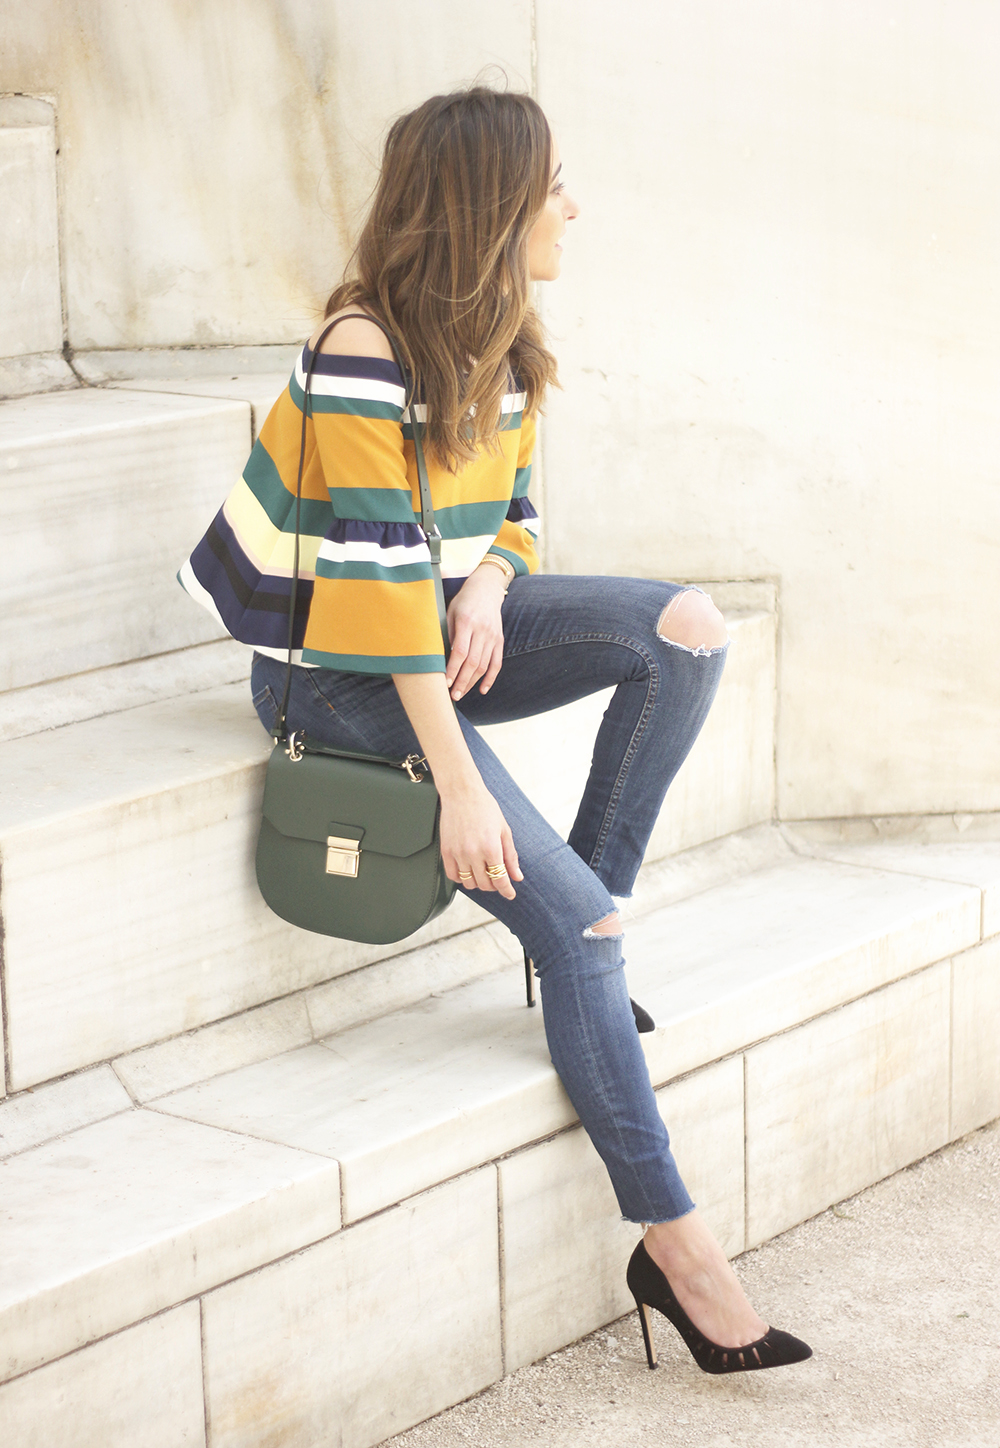 Off The Shoulder Top with stripes jeans heels accessories bag aristocrazy15